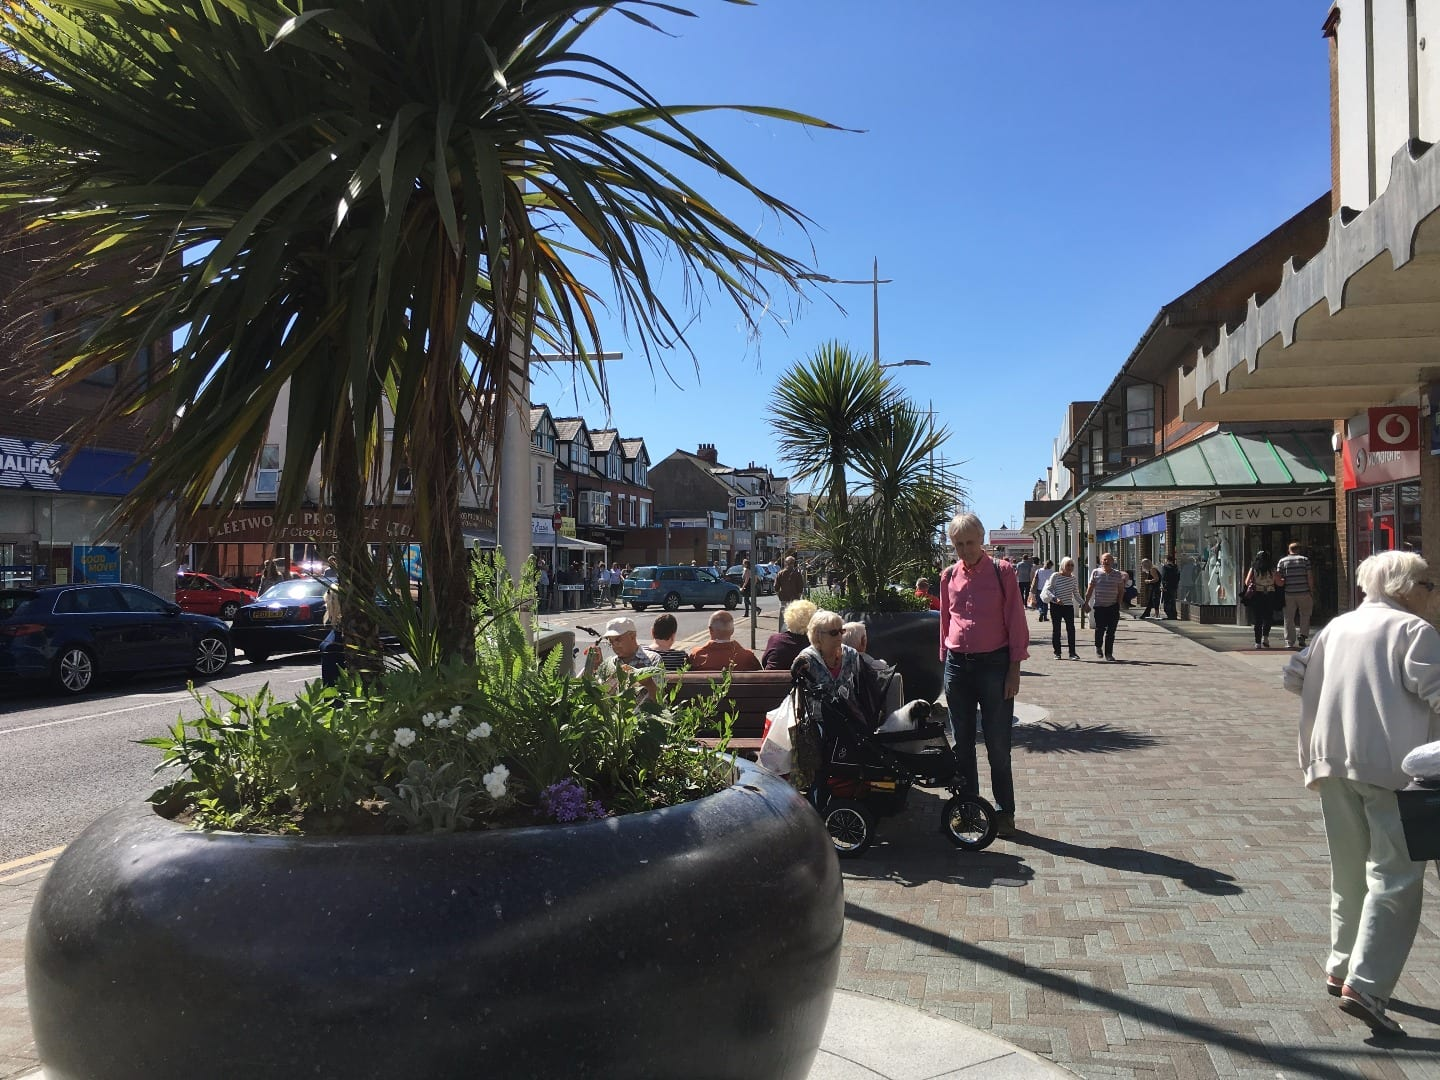 Cleveleys Town Centre. Cleveleys Coastal Community Team updates